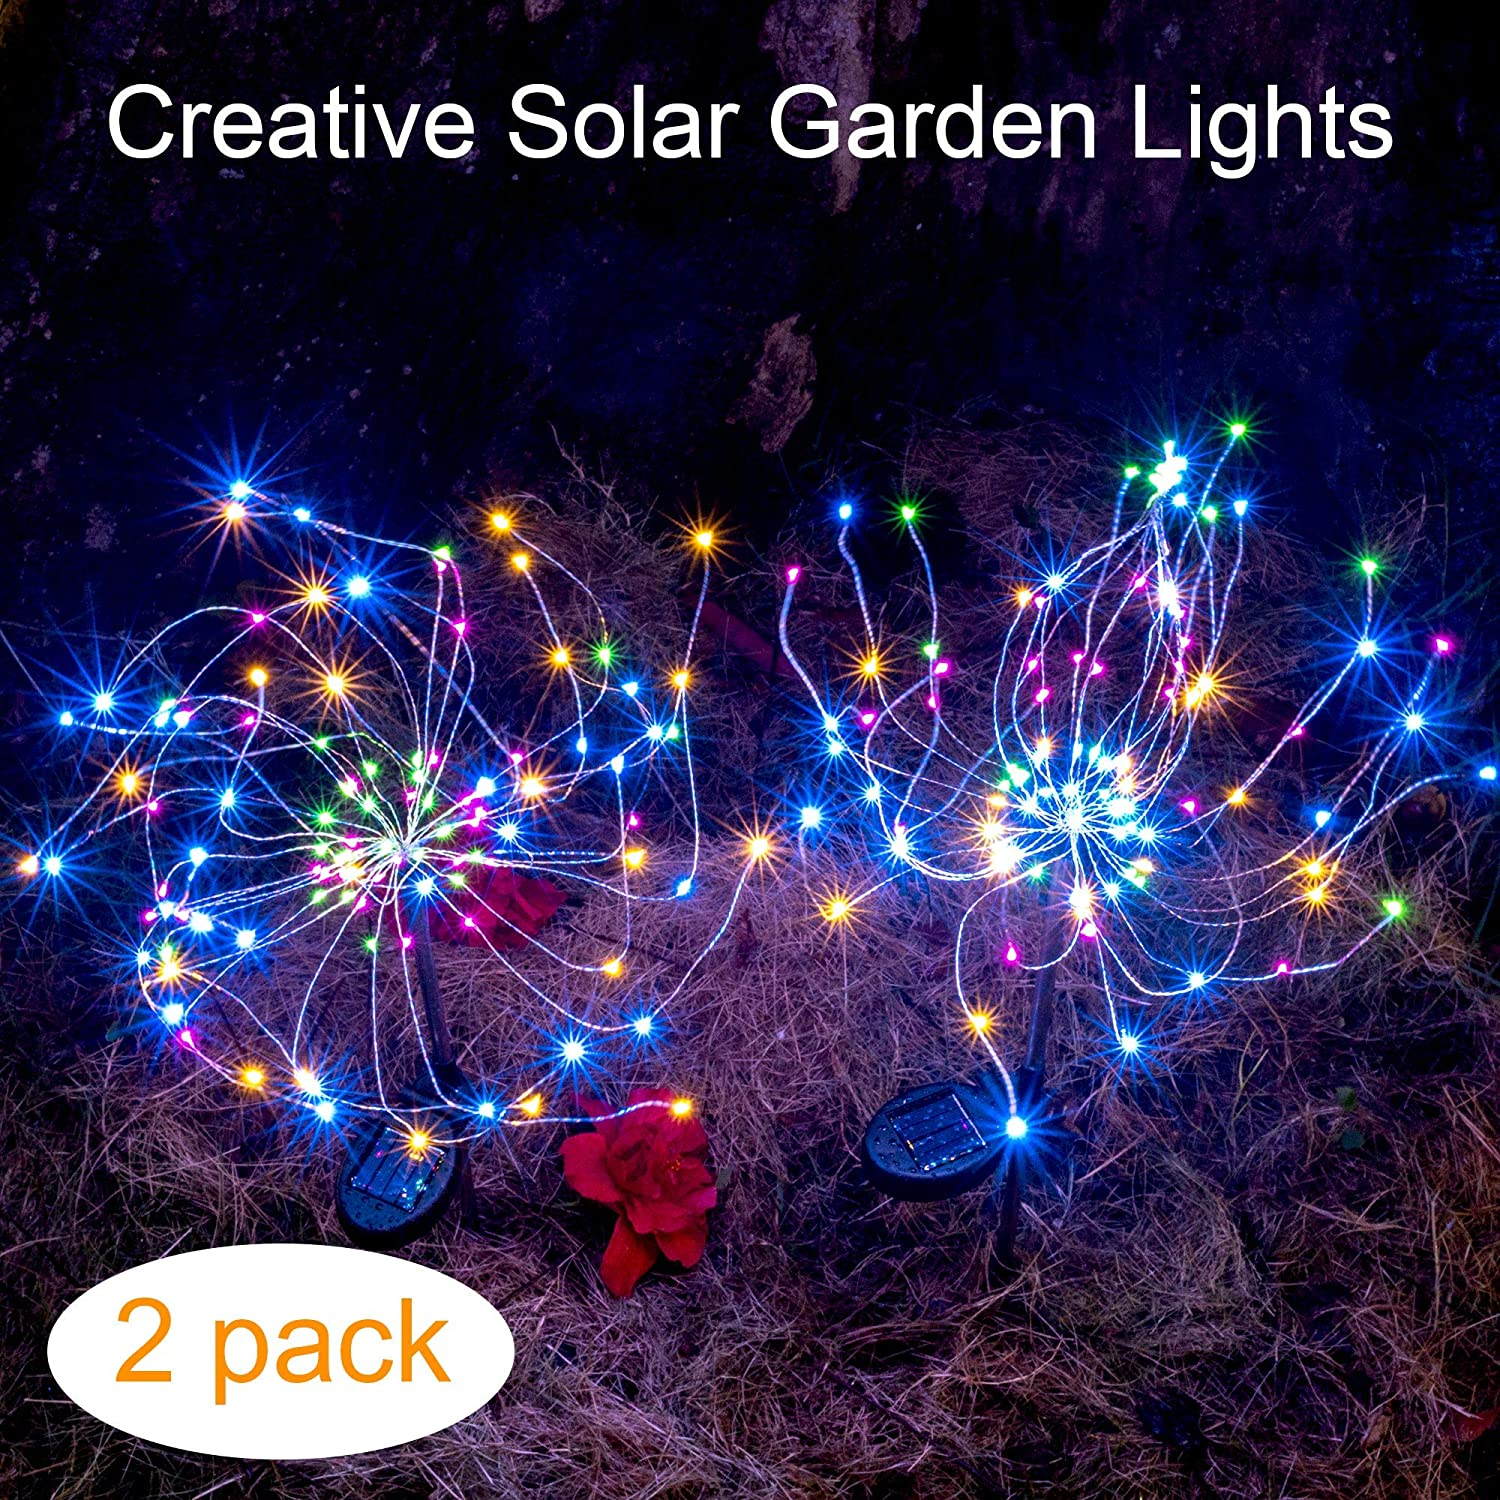 Outdoor Solar Garden Decorative Lights-Mopha Solar 105LED Powered 35Copper Wires String Landscape Light-DIY Flowers Fireworks Trees for Walkway Patio Lawn Backyard, Christmas Party Decor(Multi-Color) Solar-lights